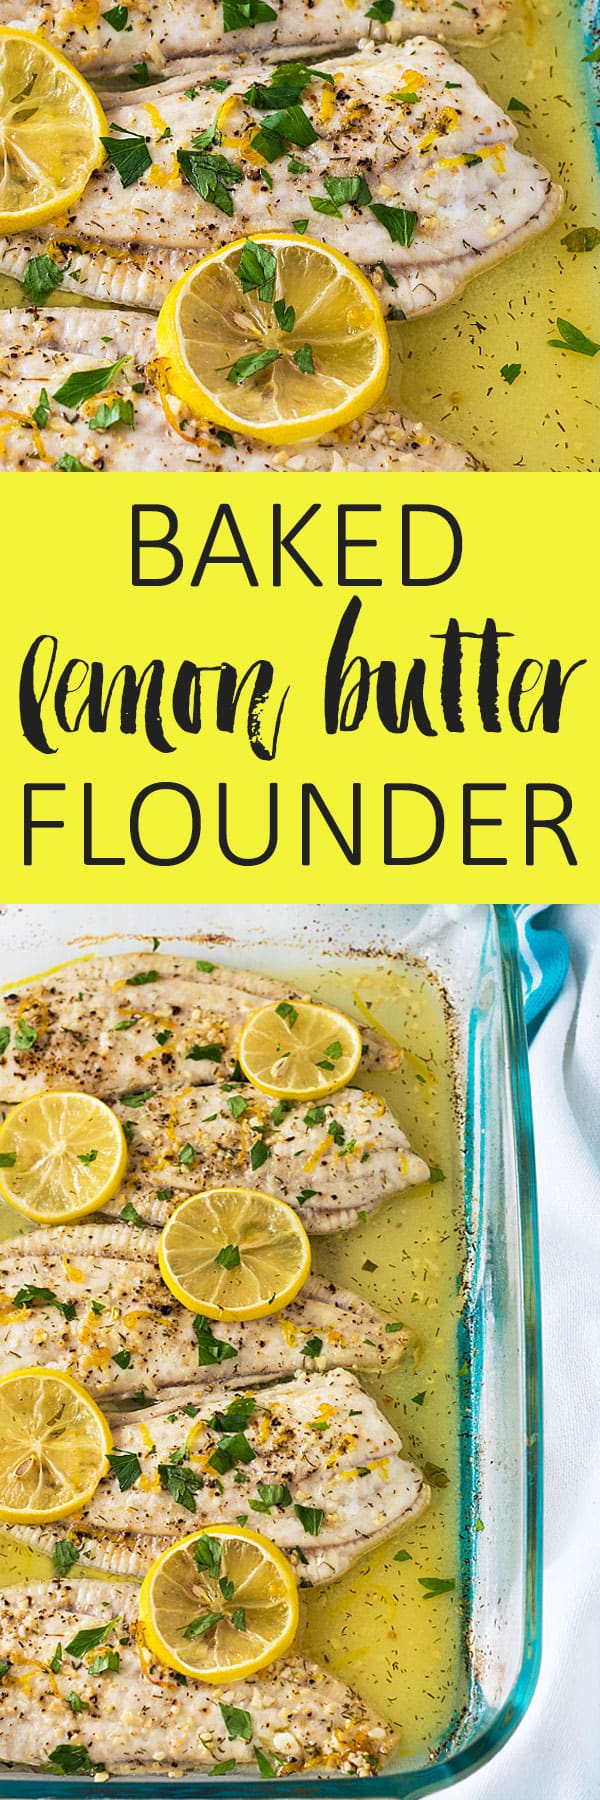 Baked Lemon Butter Flounder - An easy seafood dinner in less than 30 minutes!